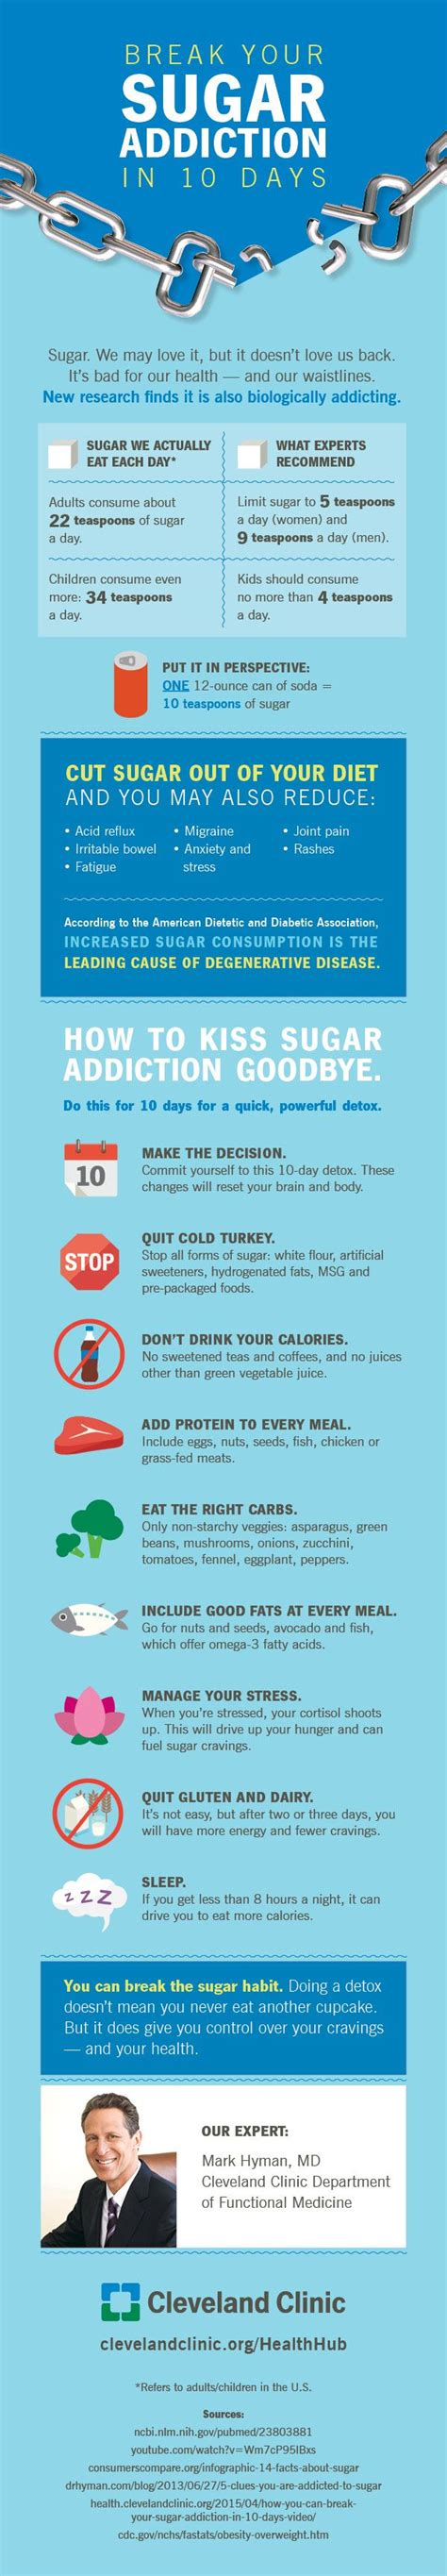 Cleveland Clinic 10 Day Detox Diet by Your Sugar Addiction In 10 Days Infographic